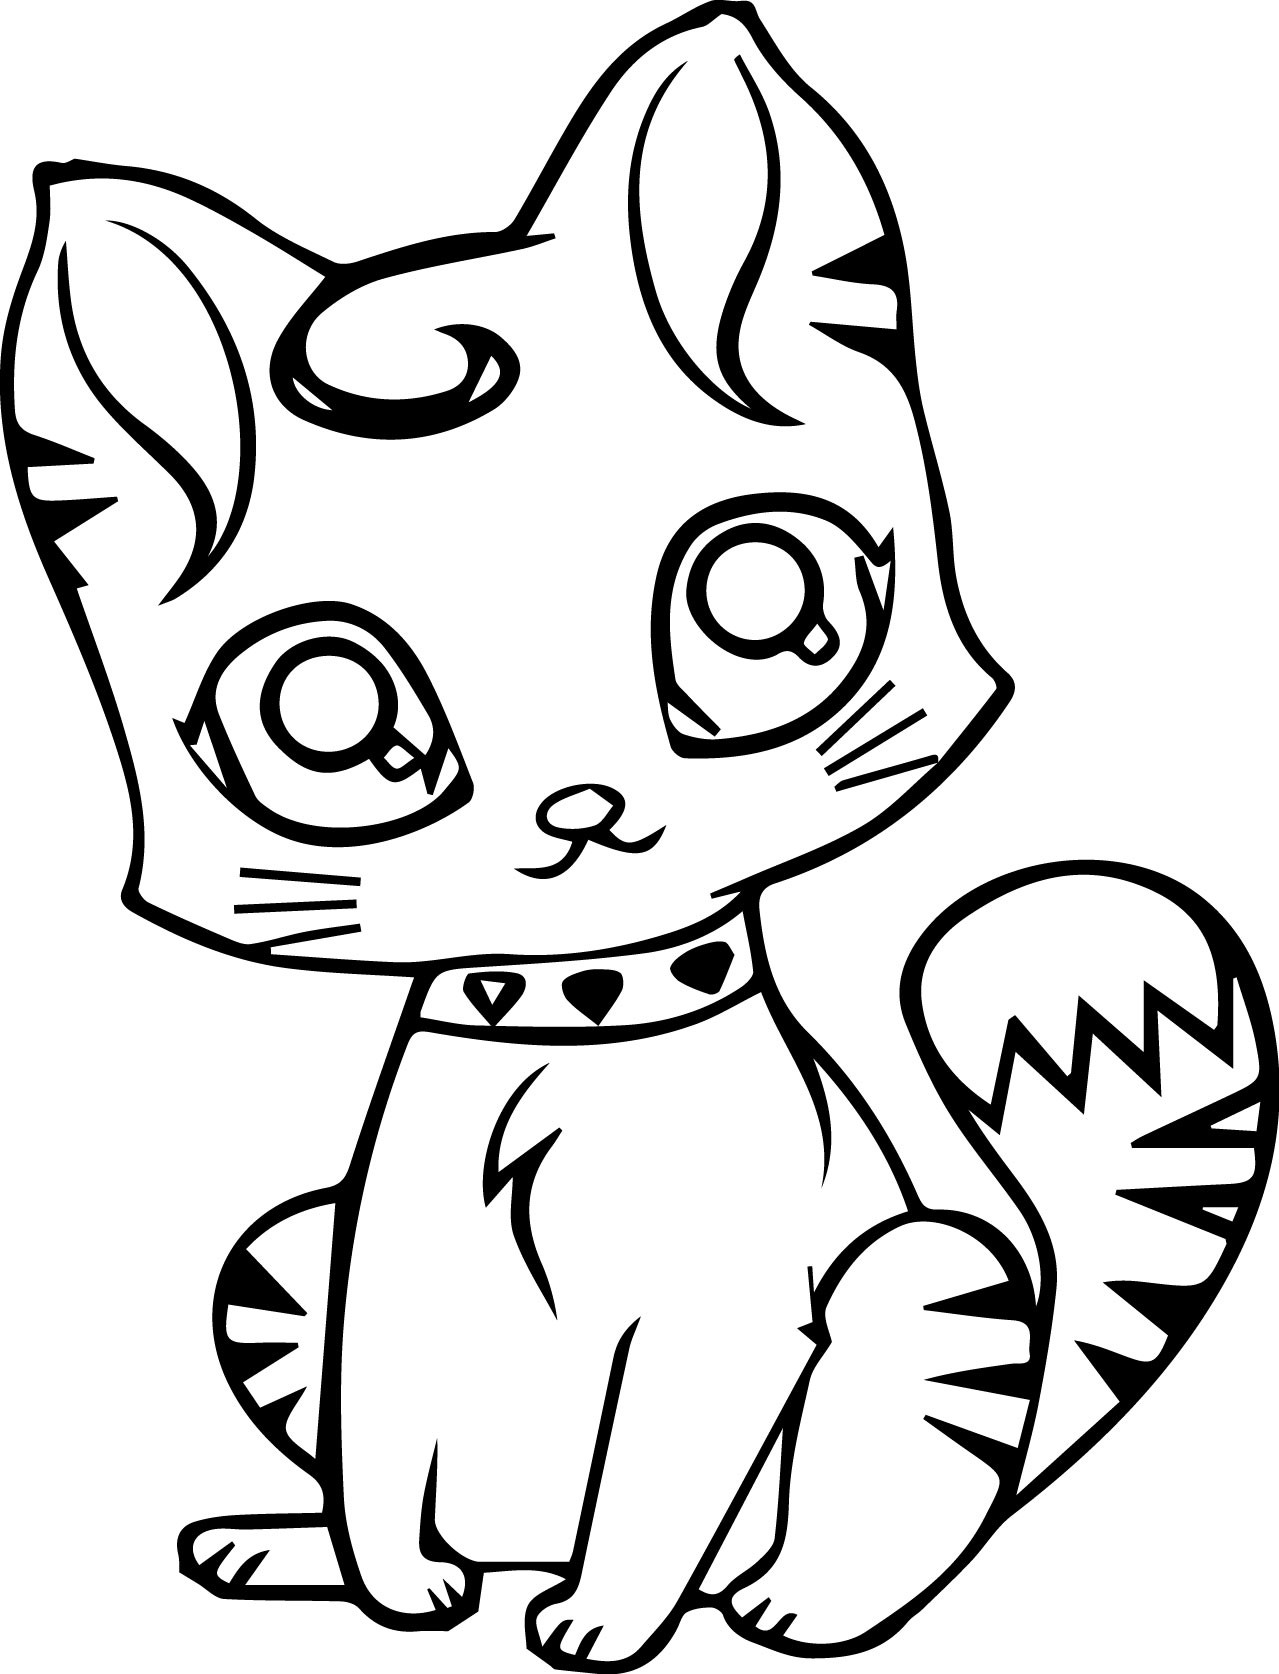 cat printable free printable cat pictures free download on clipartmag printable cat